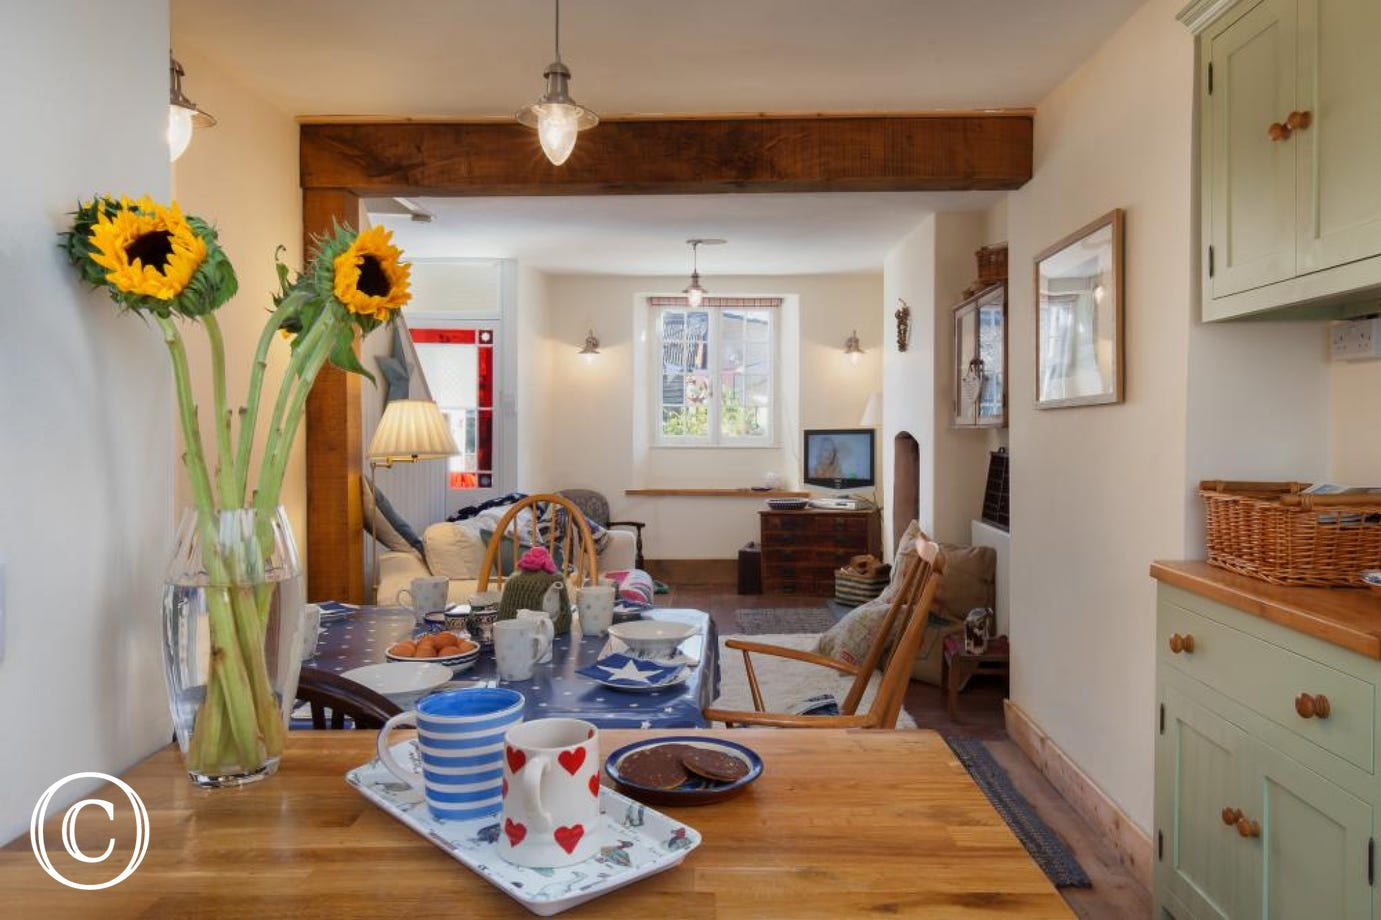 Star Cottage, Shaldon - View of living room and dining table from the kitchen